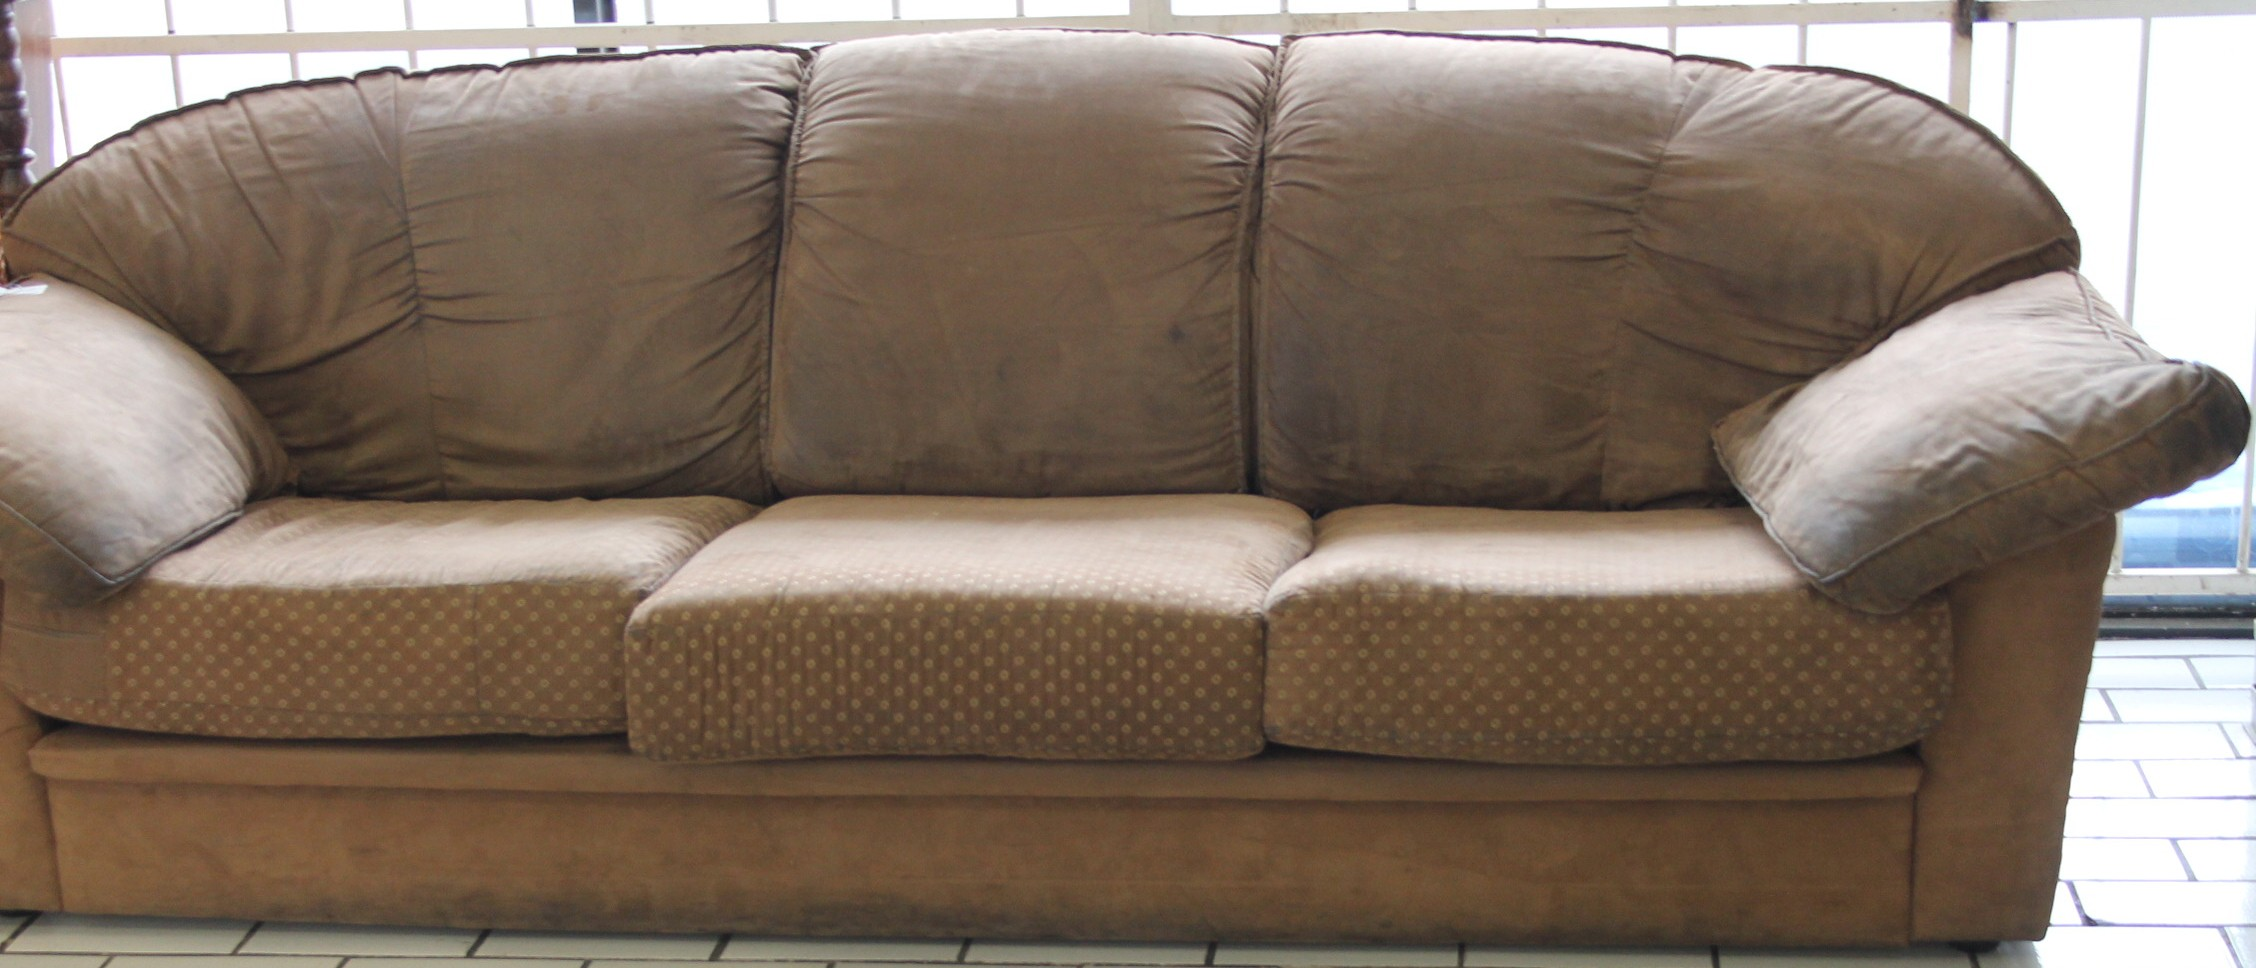 3 Seater couch S028860a #Rosettenvillepawnshop